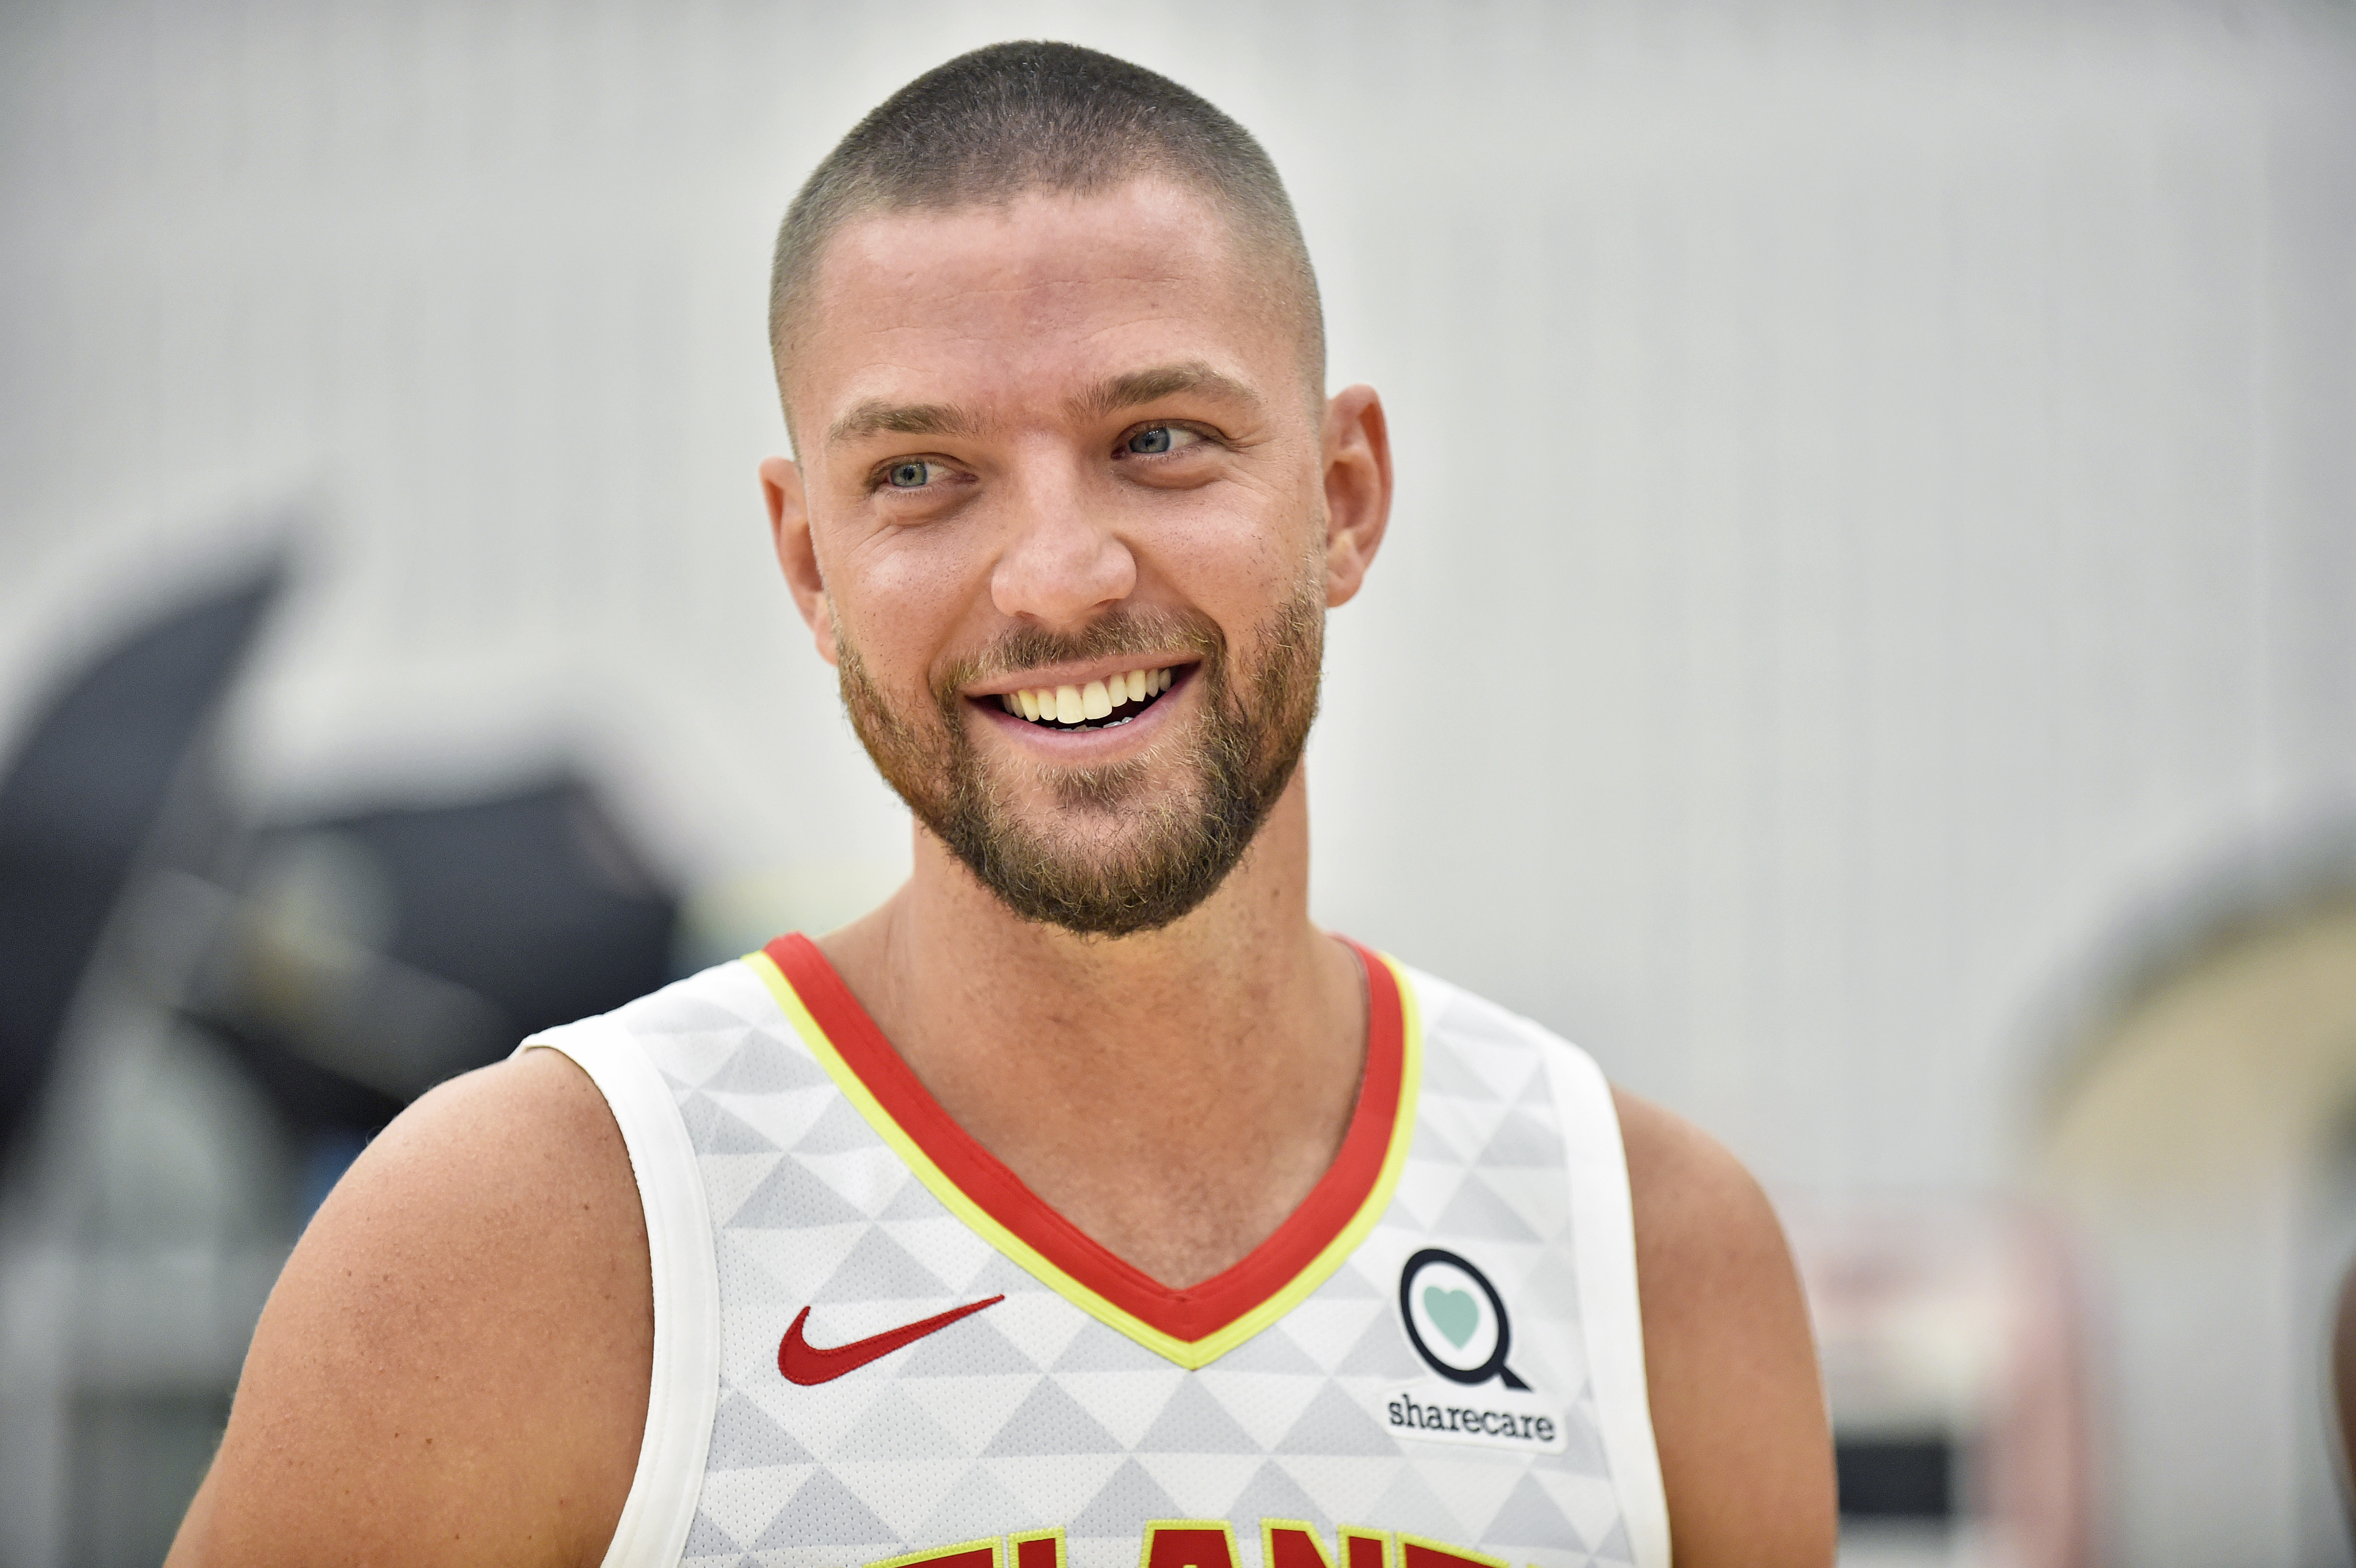 Hawks forward Chandler Parsons talks with reporters